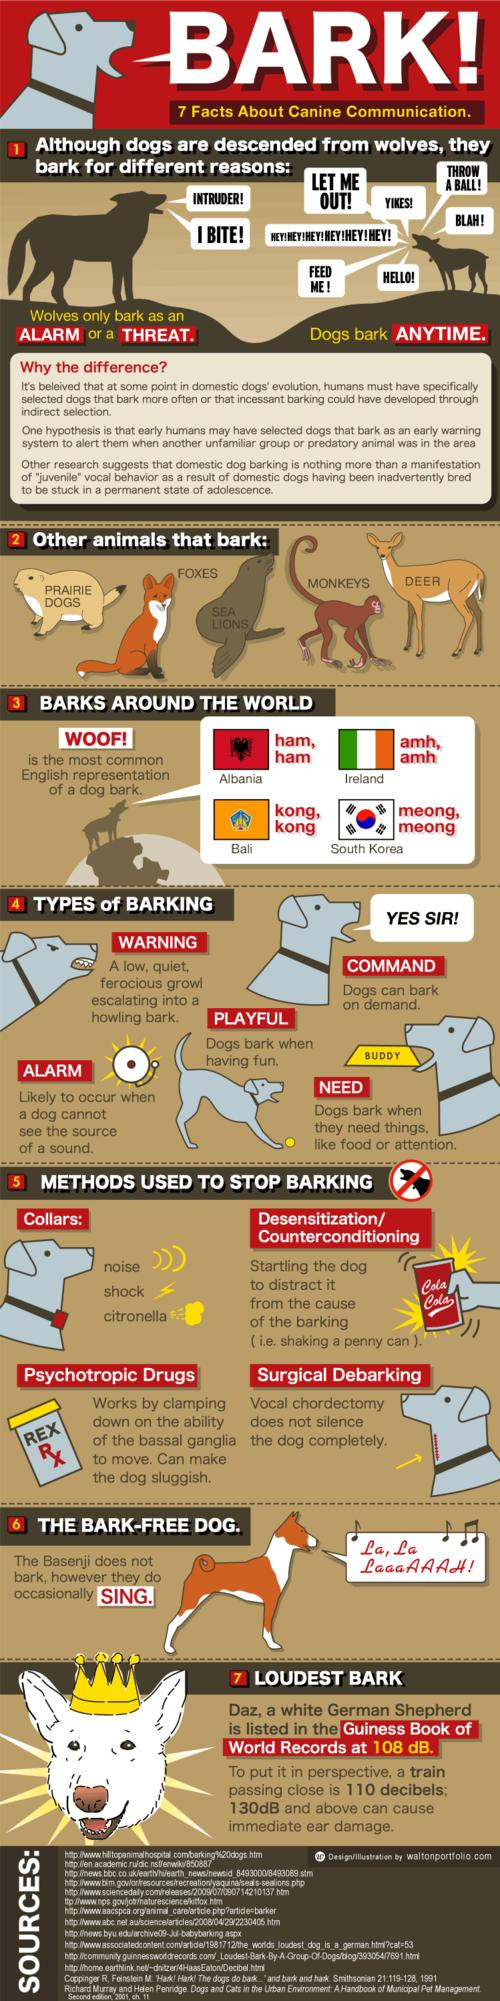 dog bark infographic.png.scaled500